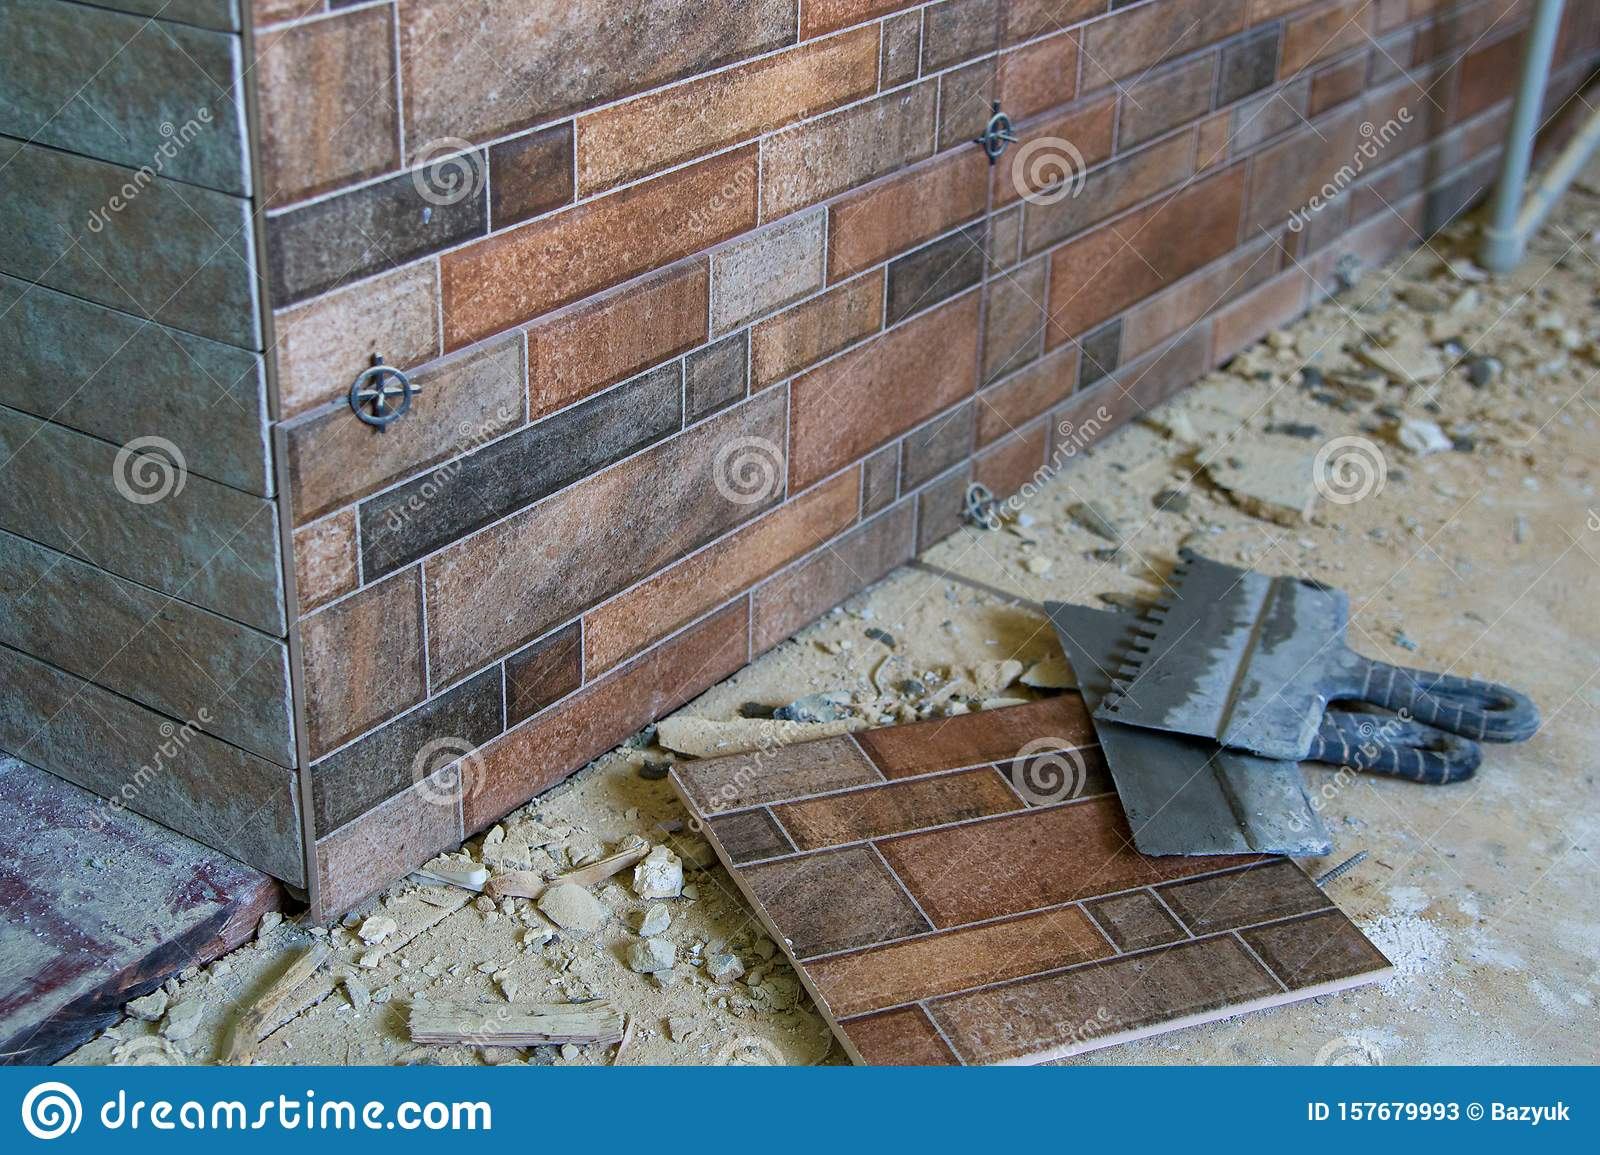 Work Laid Ceramic Tile On The Wall The Work Of Completing Tile Laying In The Kitchen Stock Image Image Of Flooring Corner 157679993